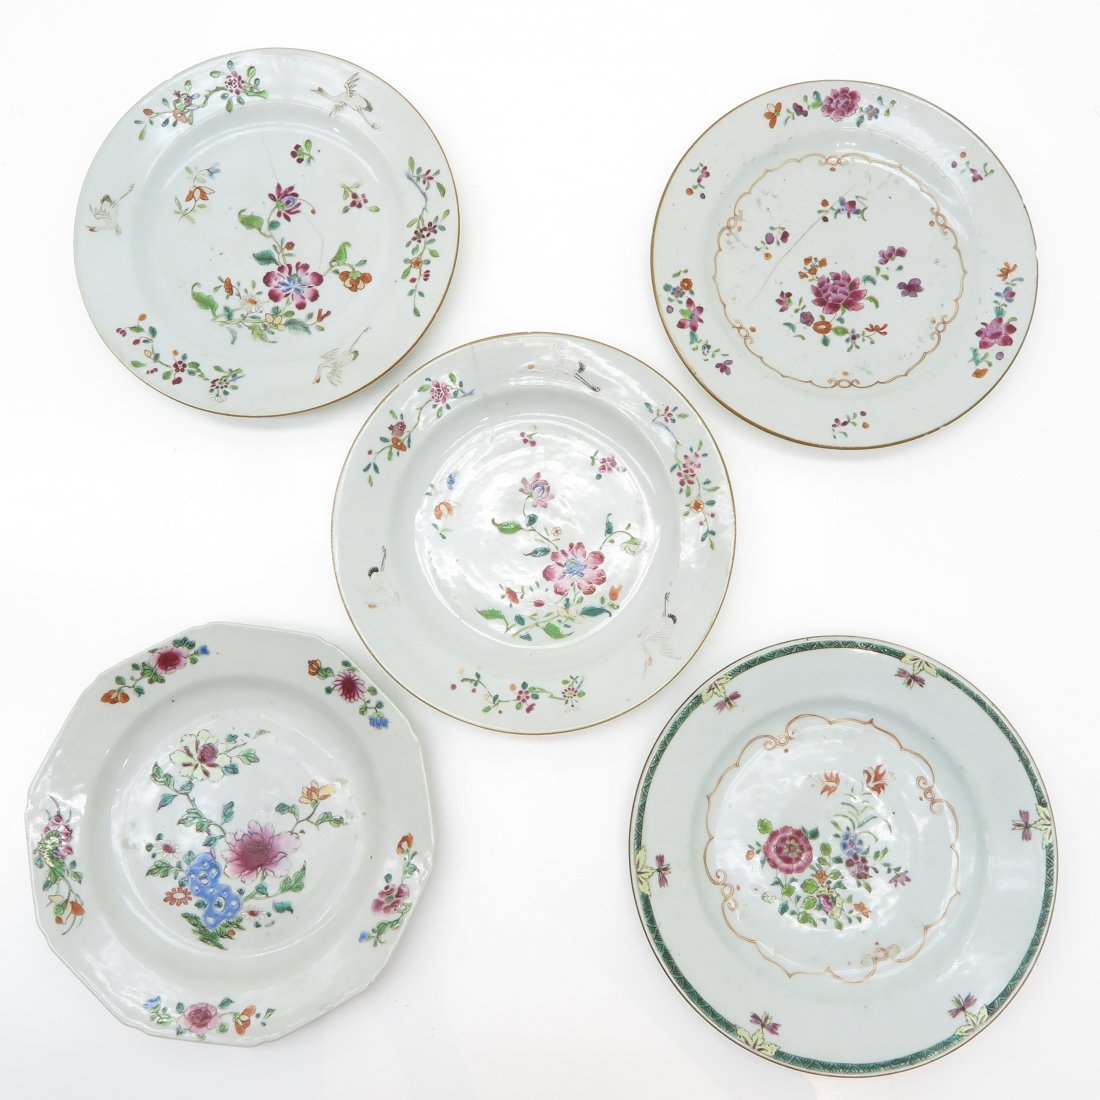 China Porcelain 18th Century Plate